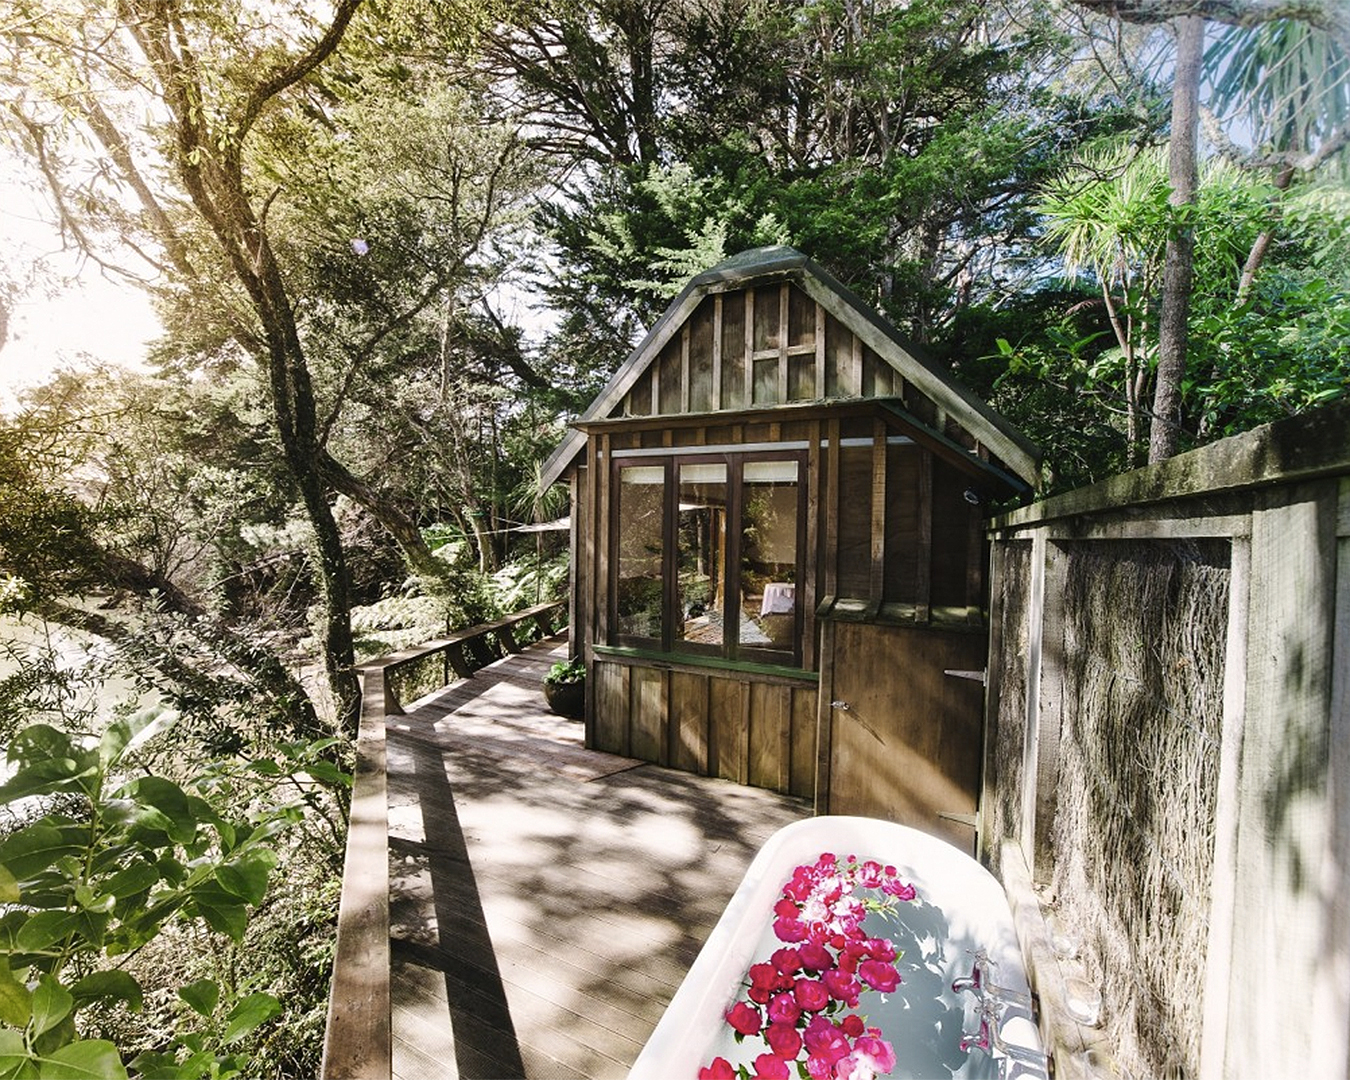 A view of a gorgeous looking cottage with a bath with petals outside.